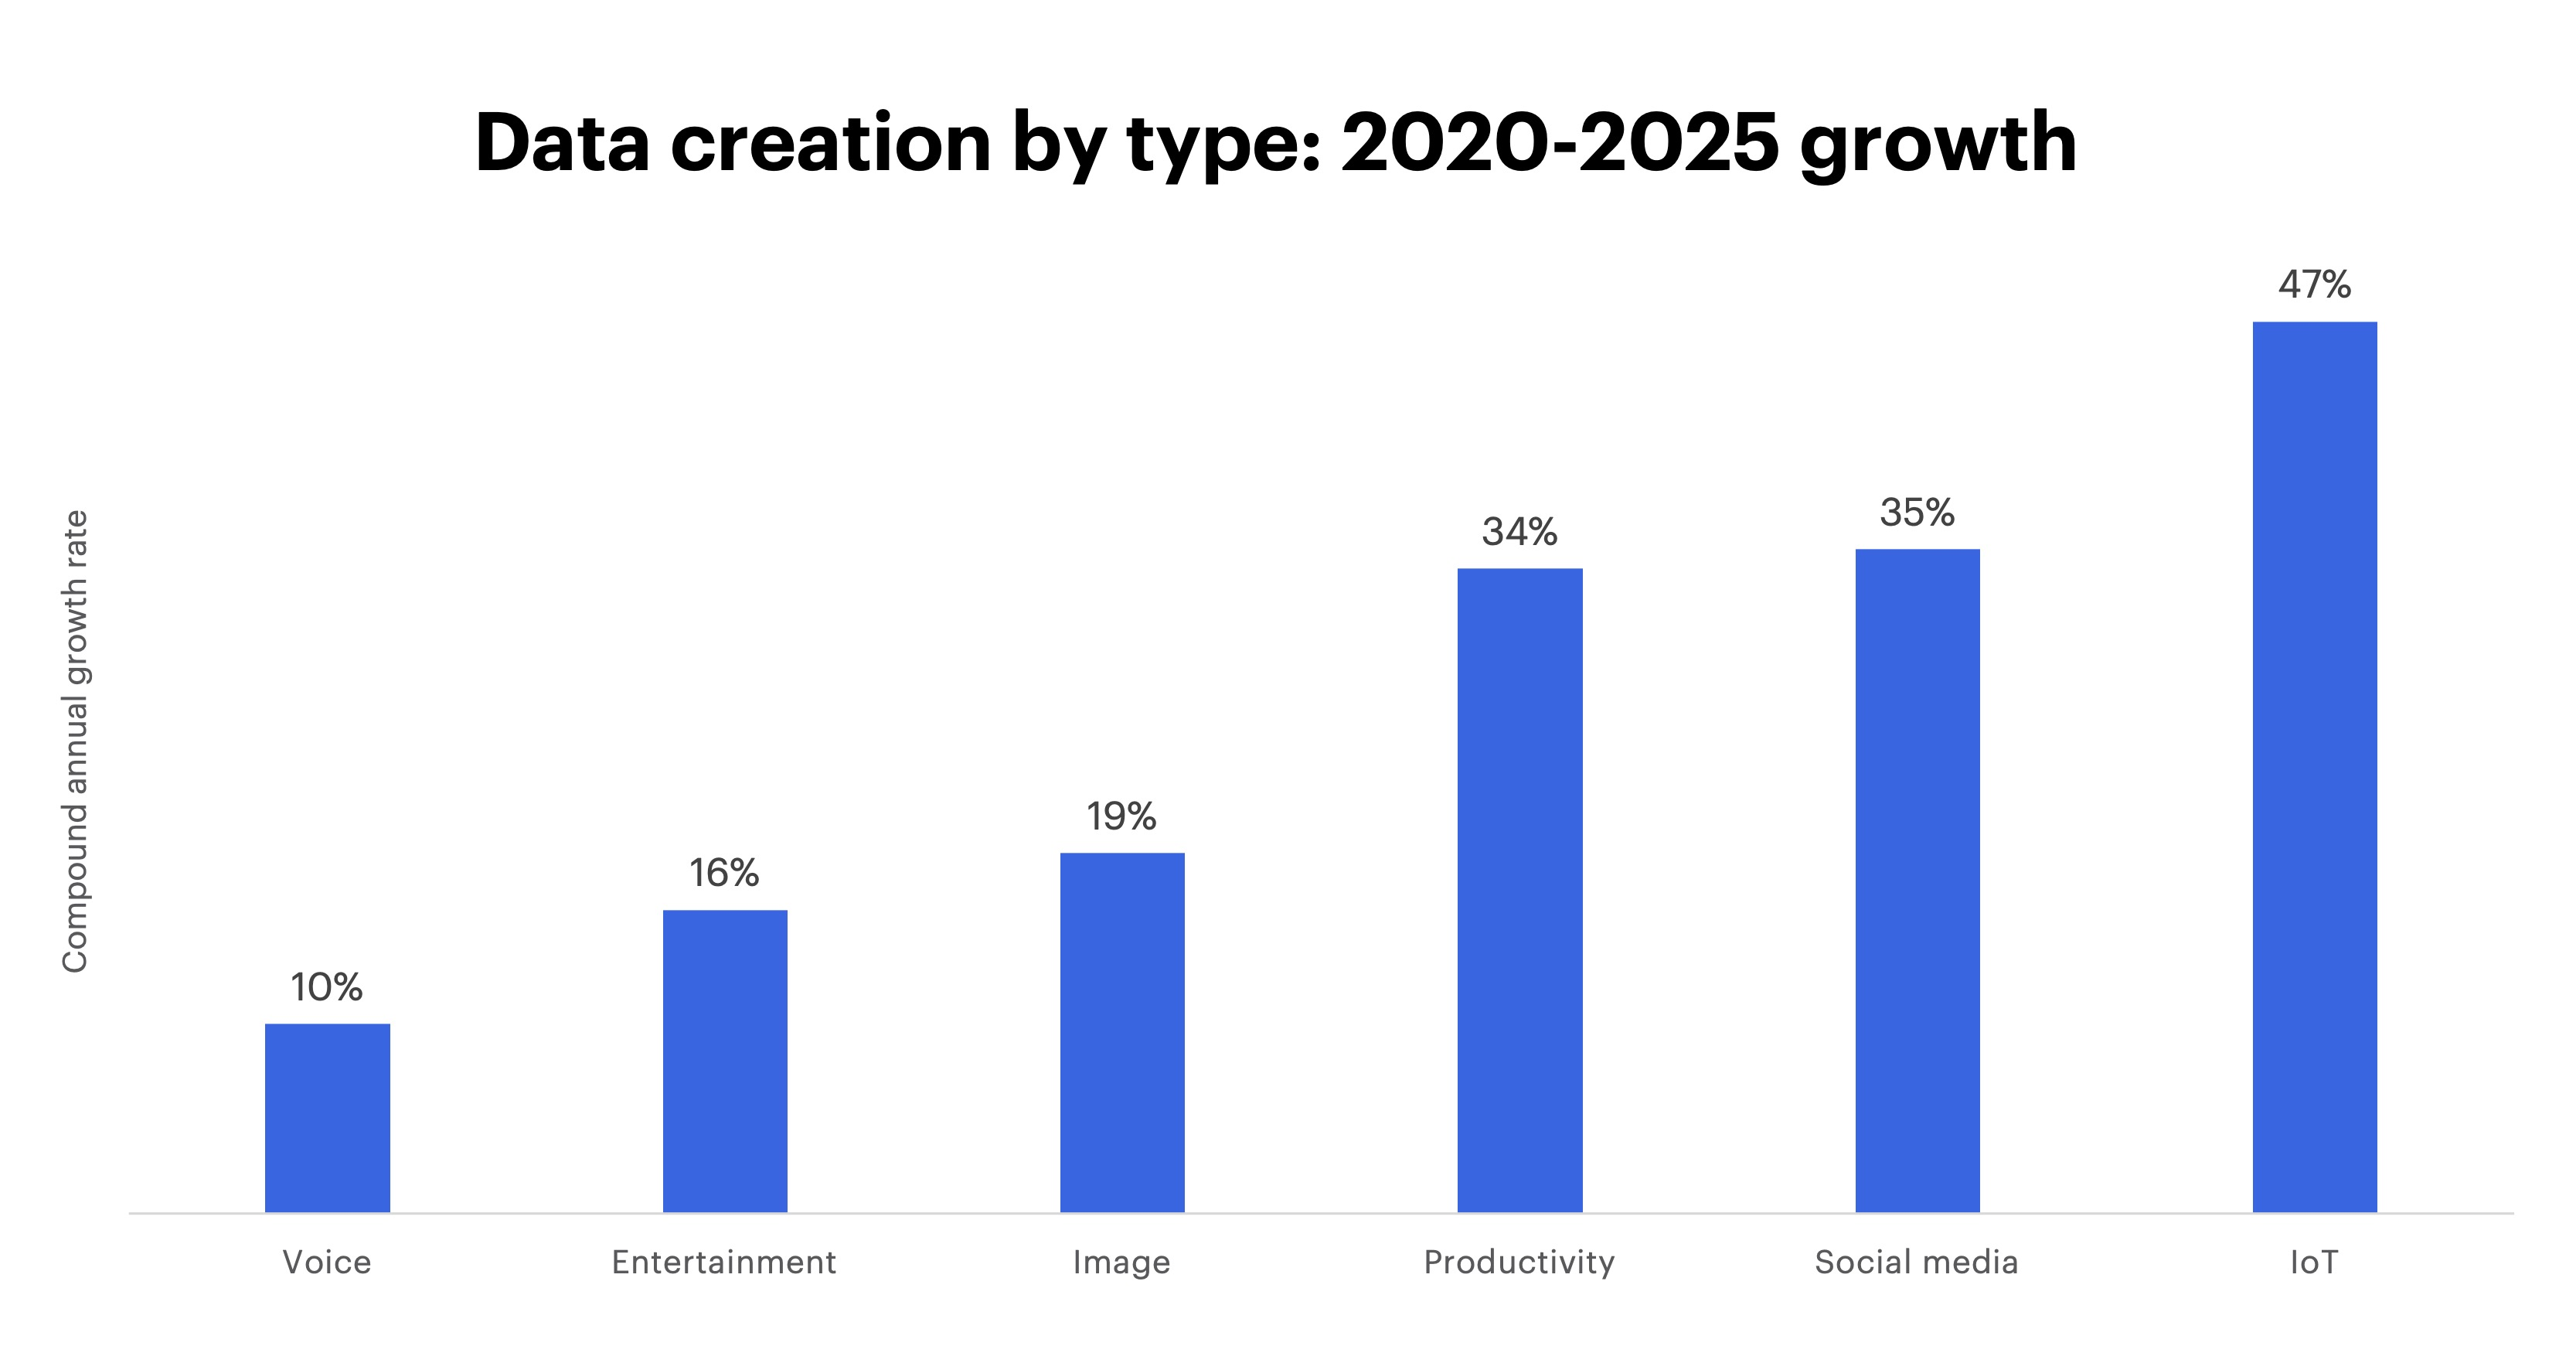 Chart - Data creation by type: 2020-2025 growth